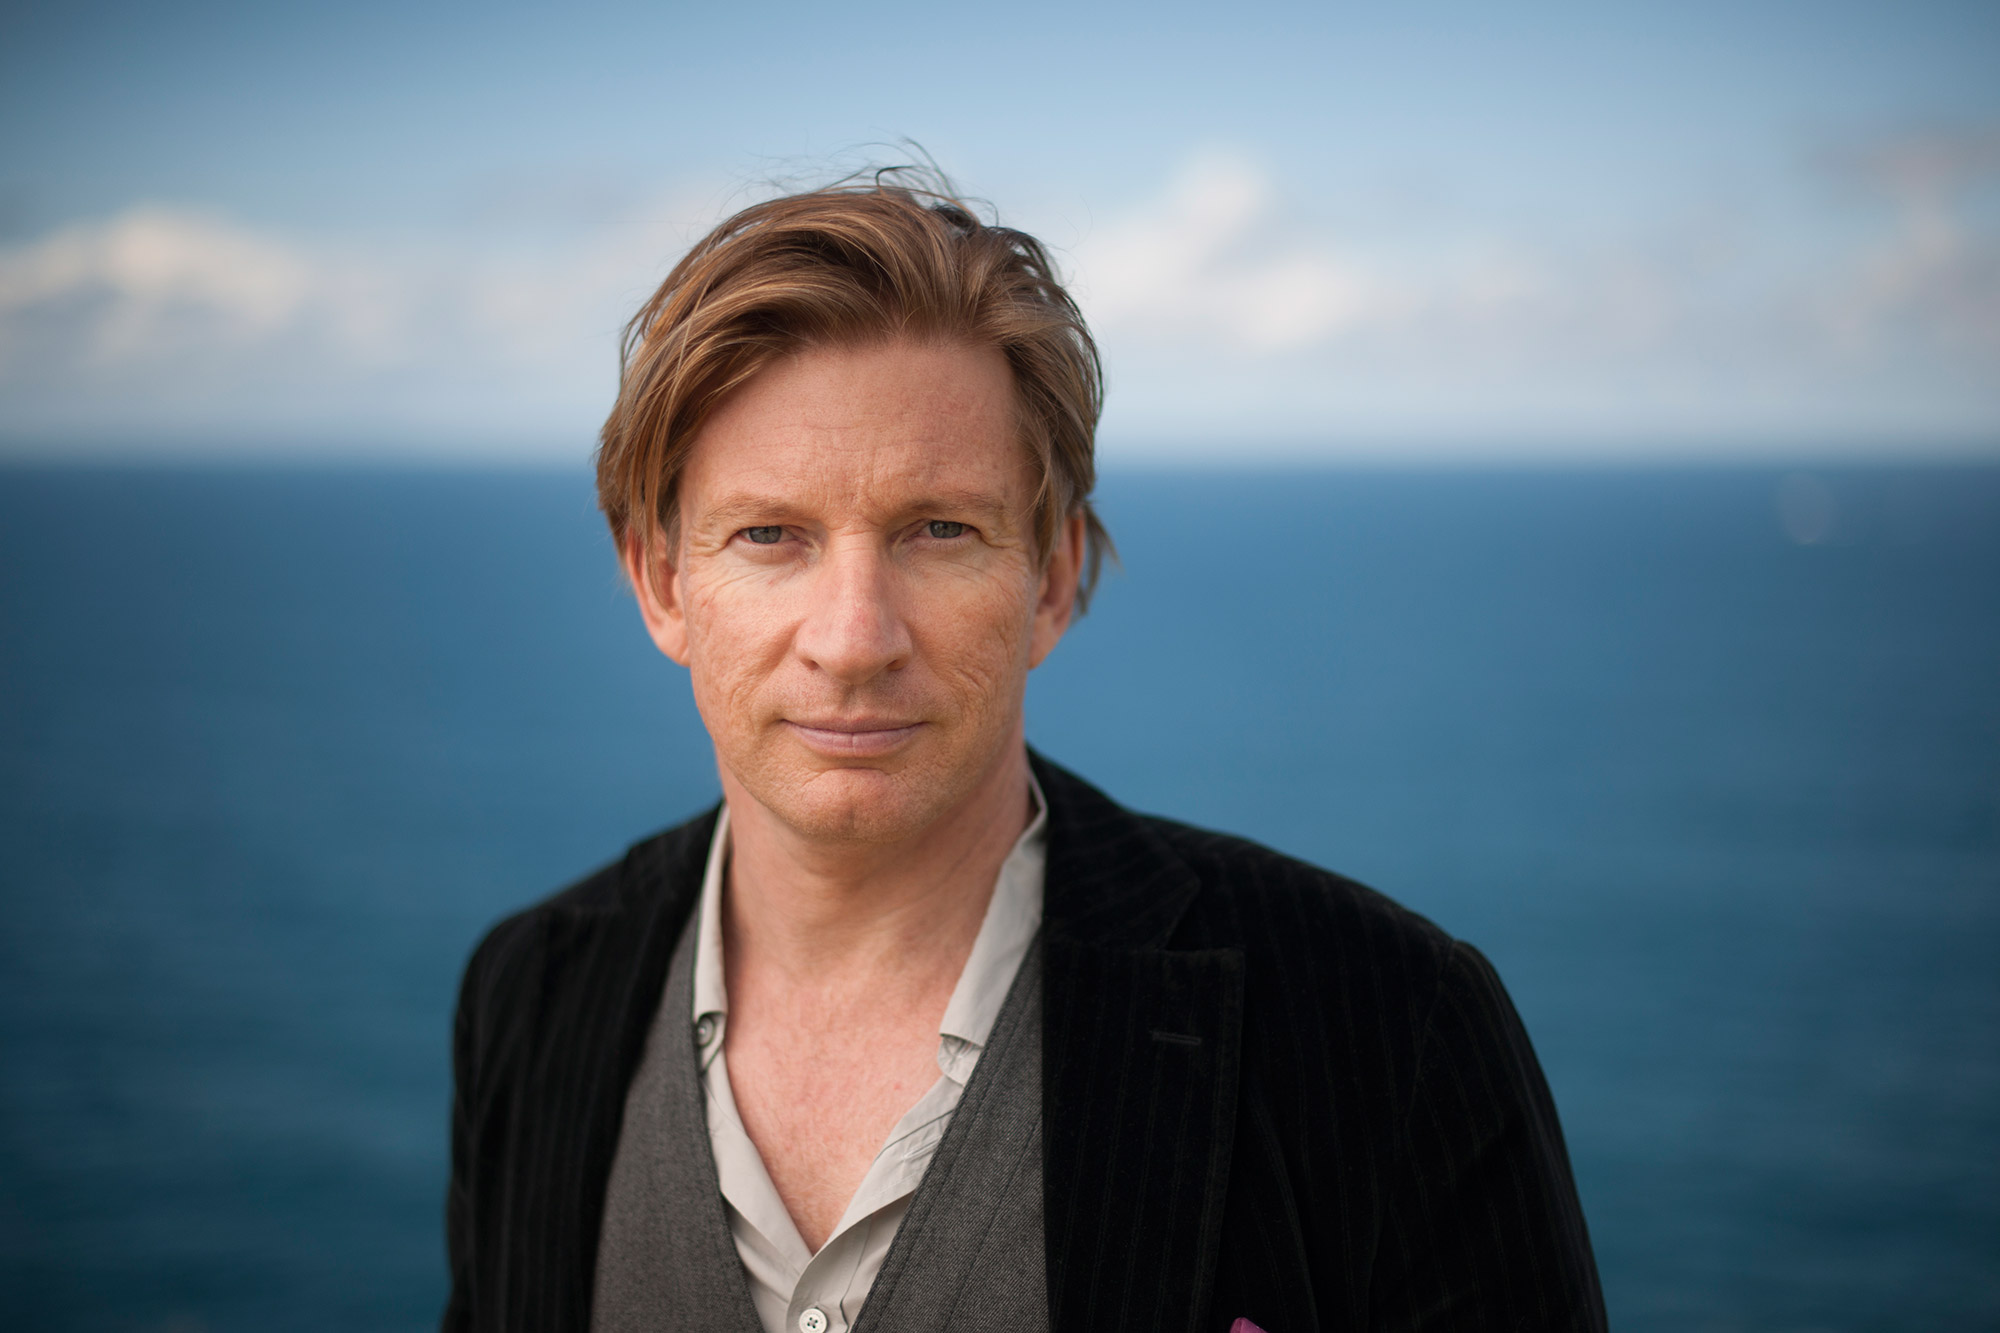 Who Do You Think You Are? Episode 4: David Wenham | Programs